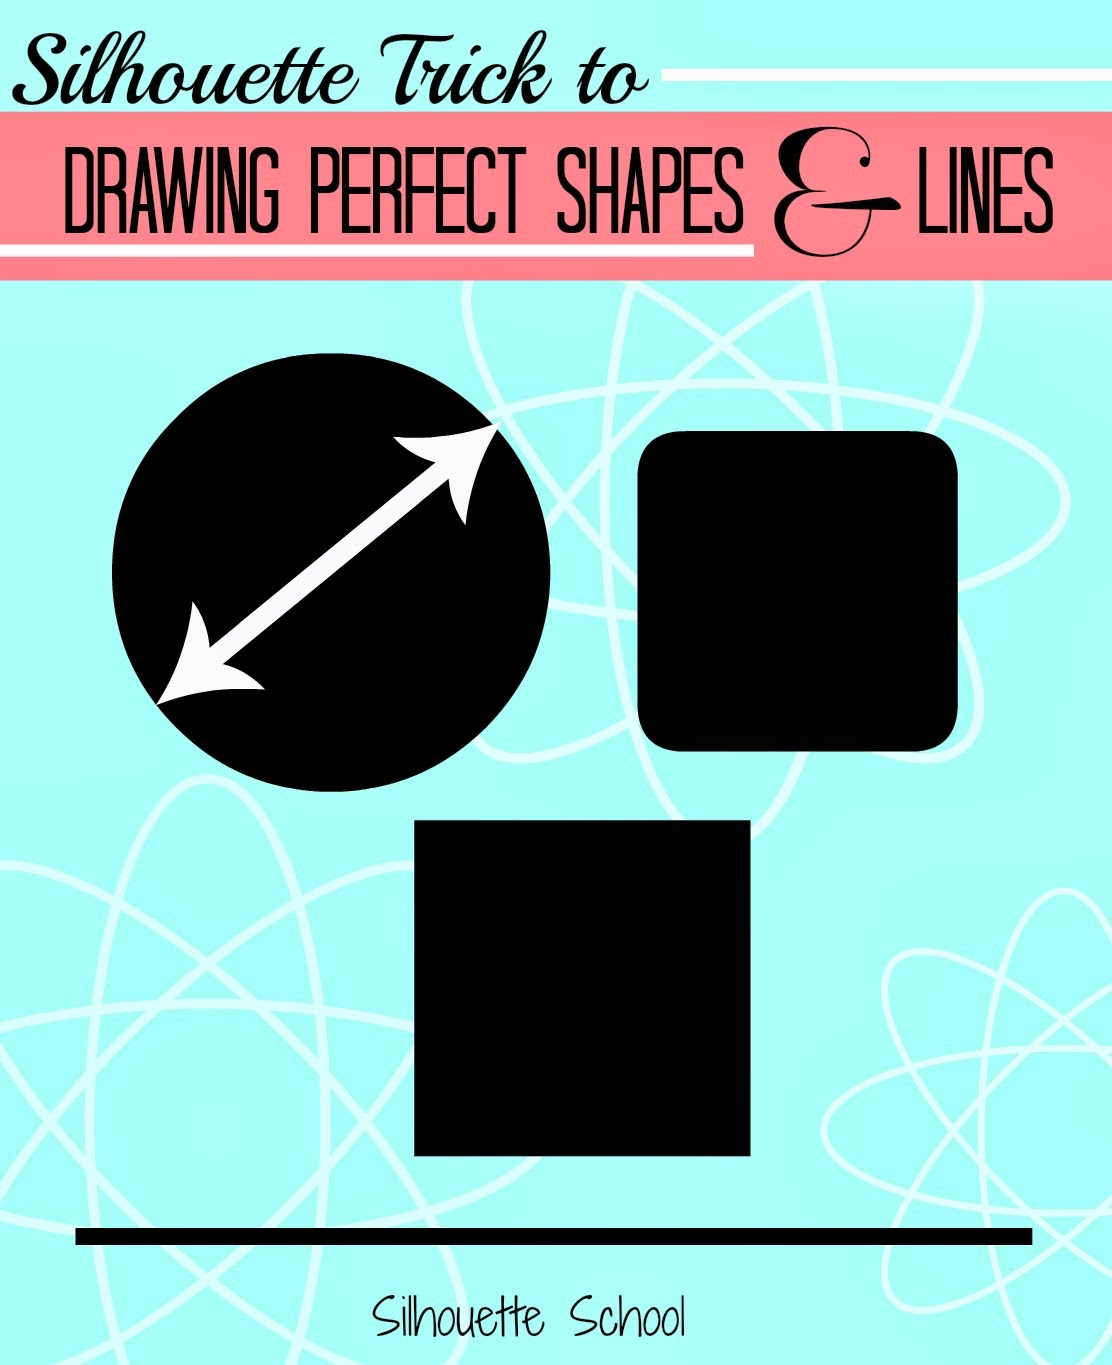 http://www.silhouetteschool.blogspot.com/2014/03/how-to-draw-perfect-circle-square-or.html